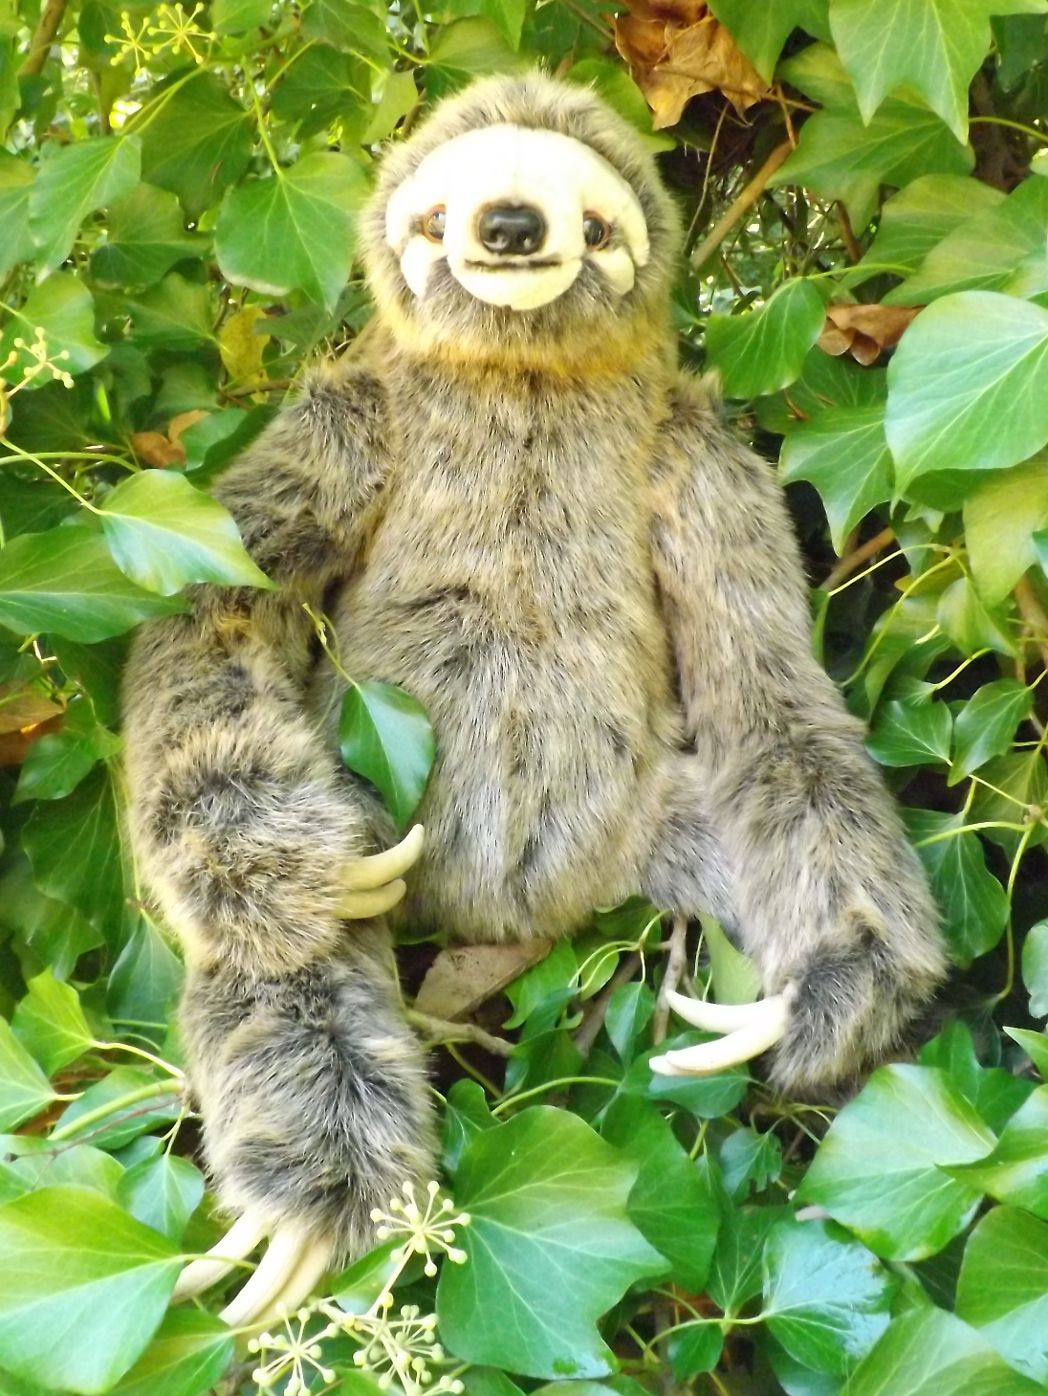 Z4017-Large-Stuffed-Animal-Sloth-24